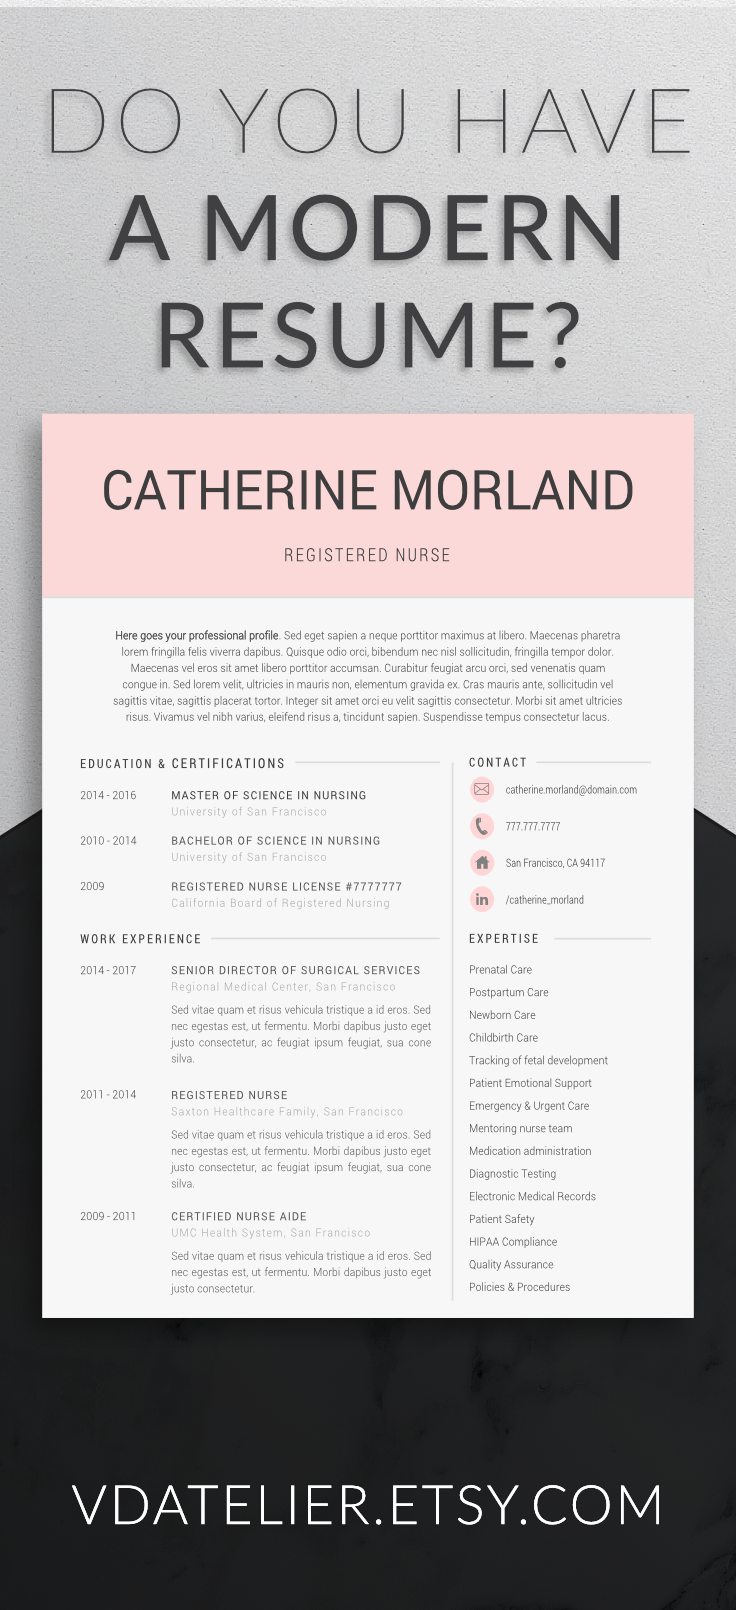 Professional Resume Template For Nurses, Doctors, And All Medical Staff.  Also Great As